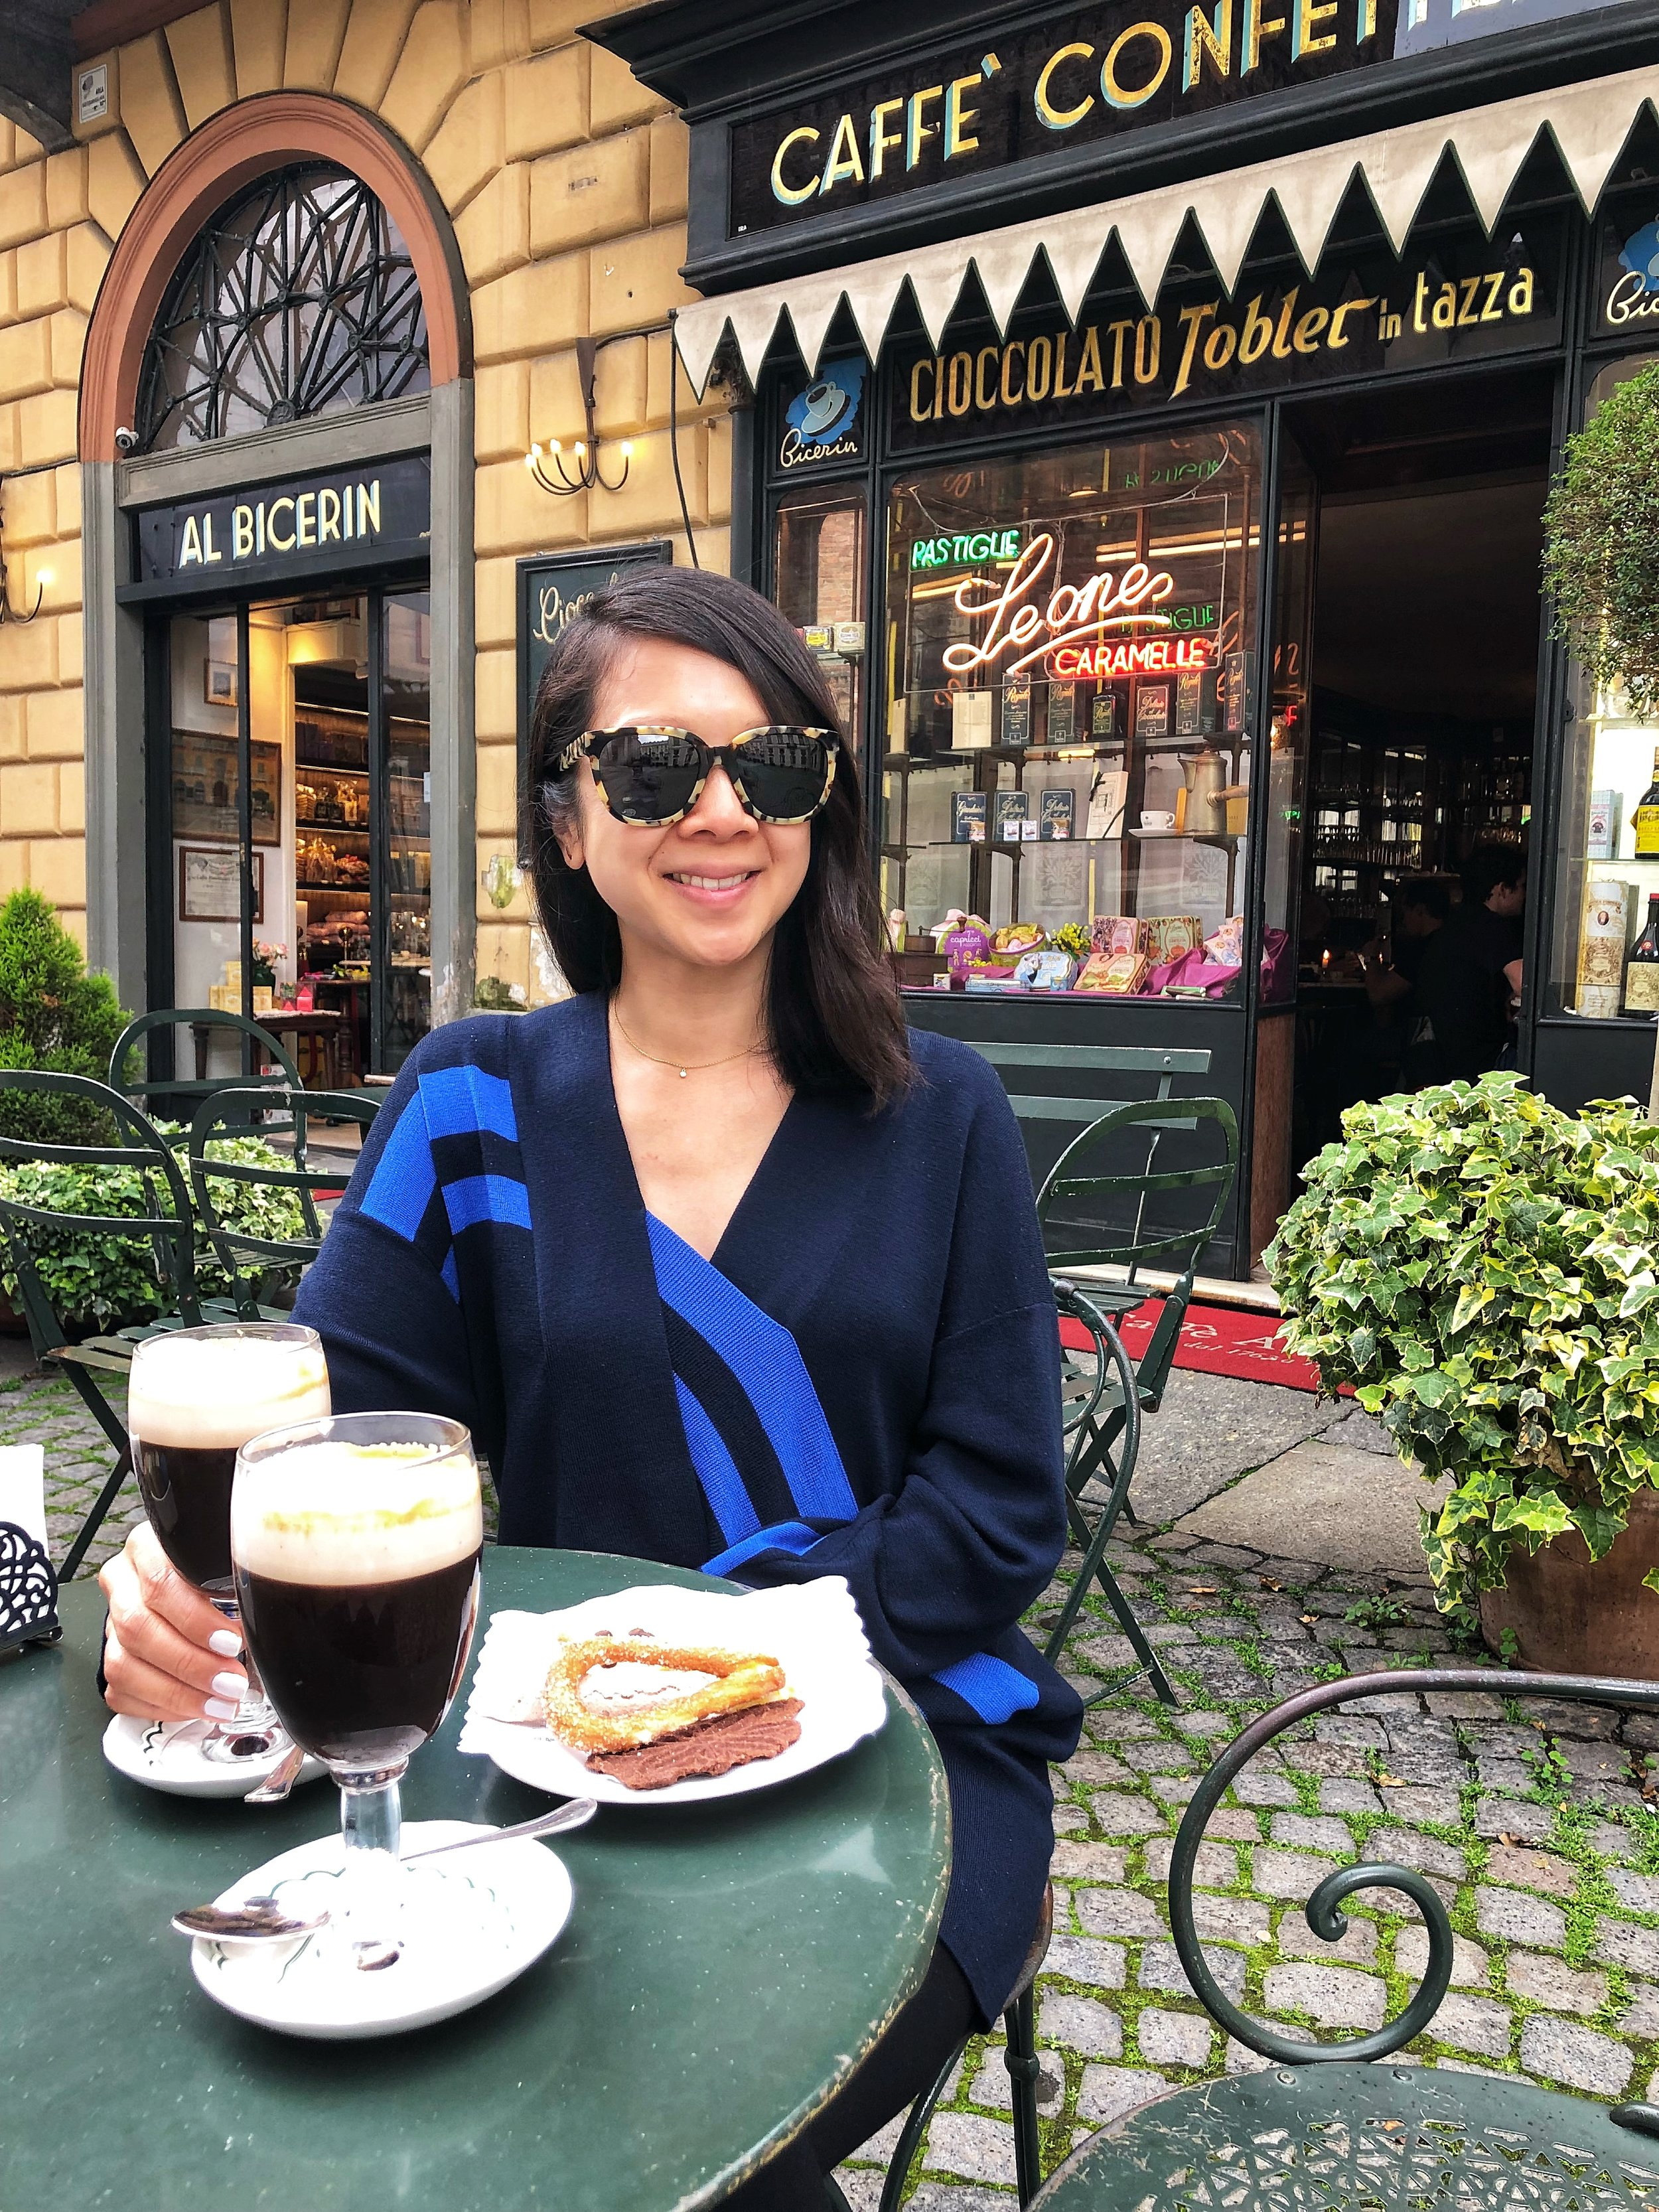 One of my favorite spots was  Caffe Al Bicerin , another Dan find. This cafe is known for its bicerin - a typical hot drink of Torino made of coffee, chocolate and cream. It was delicious!! A must if you ever find yourself in Torino. This picture was taken right before it started to rain...